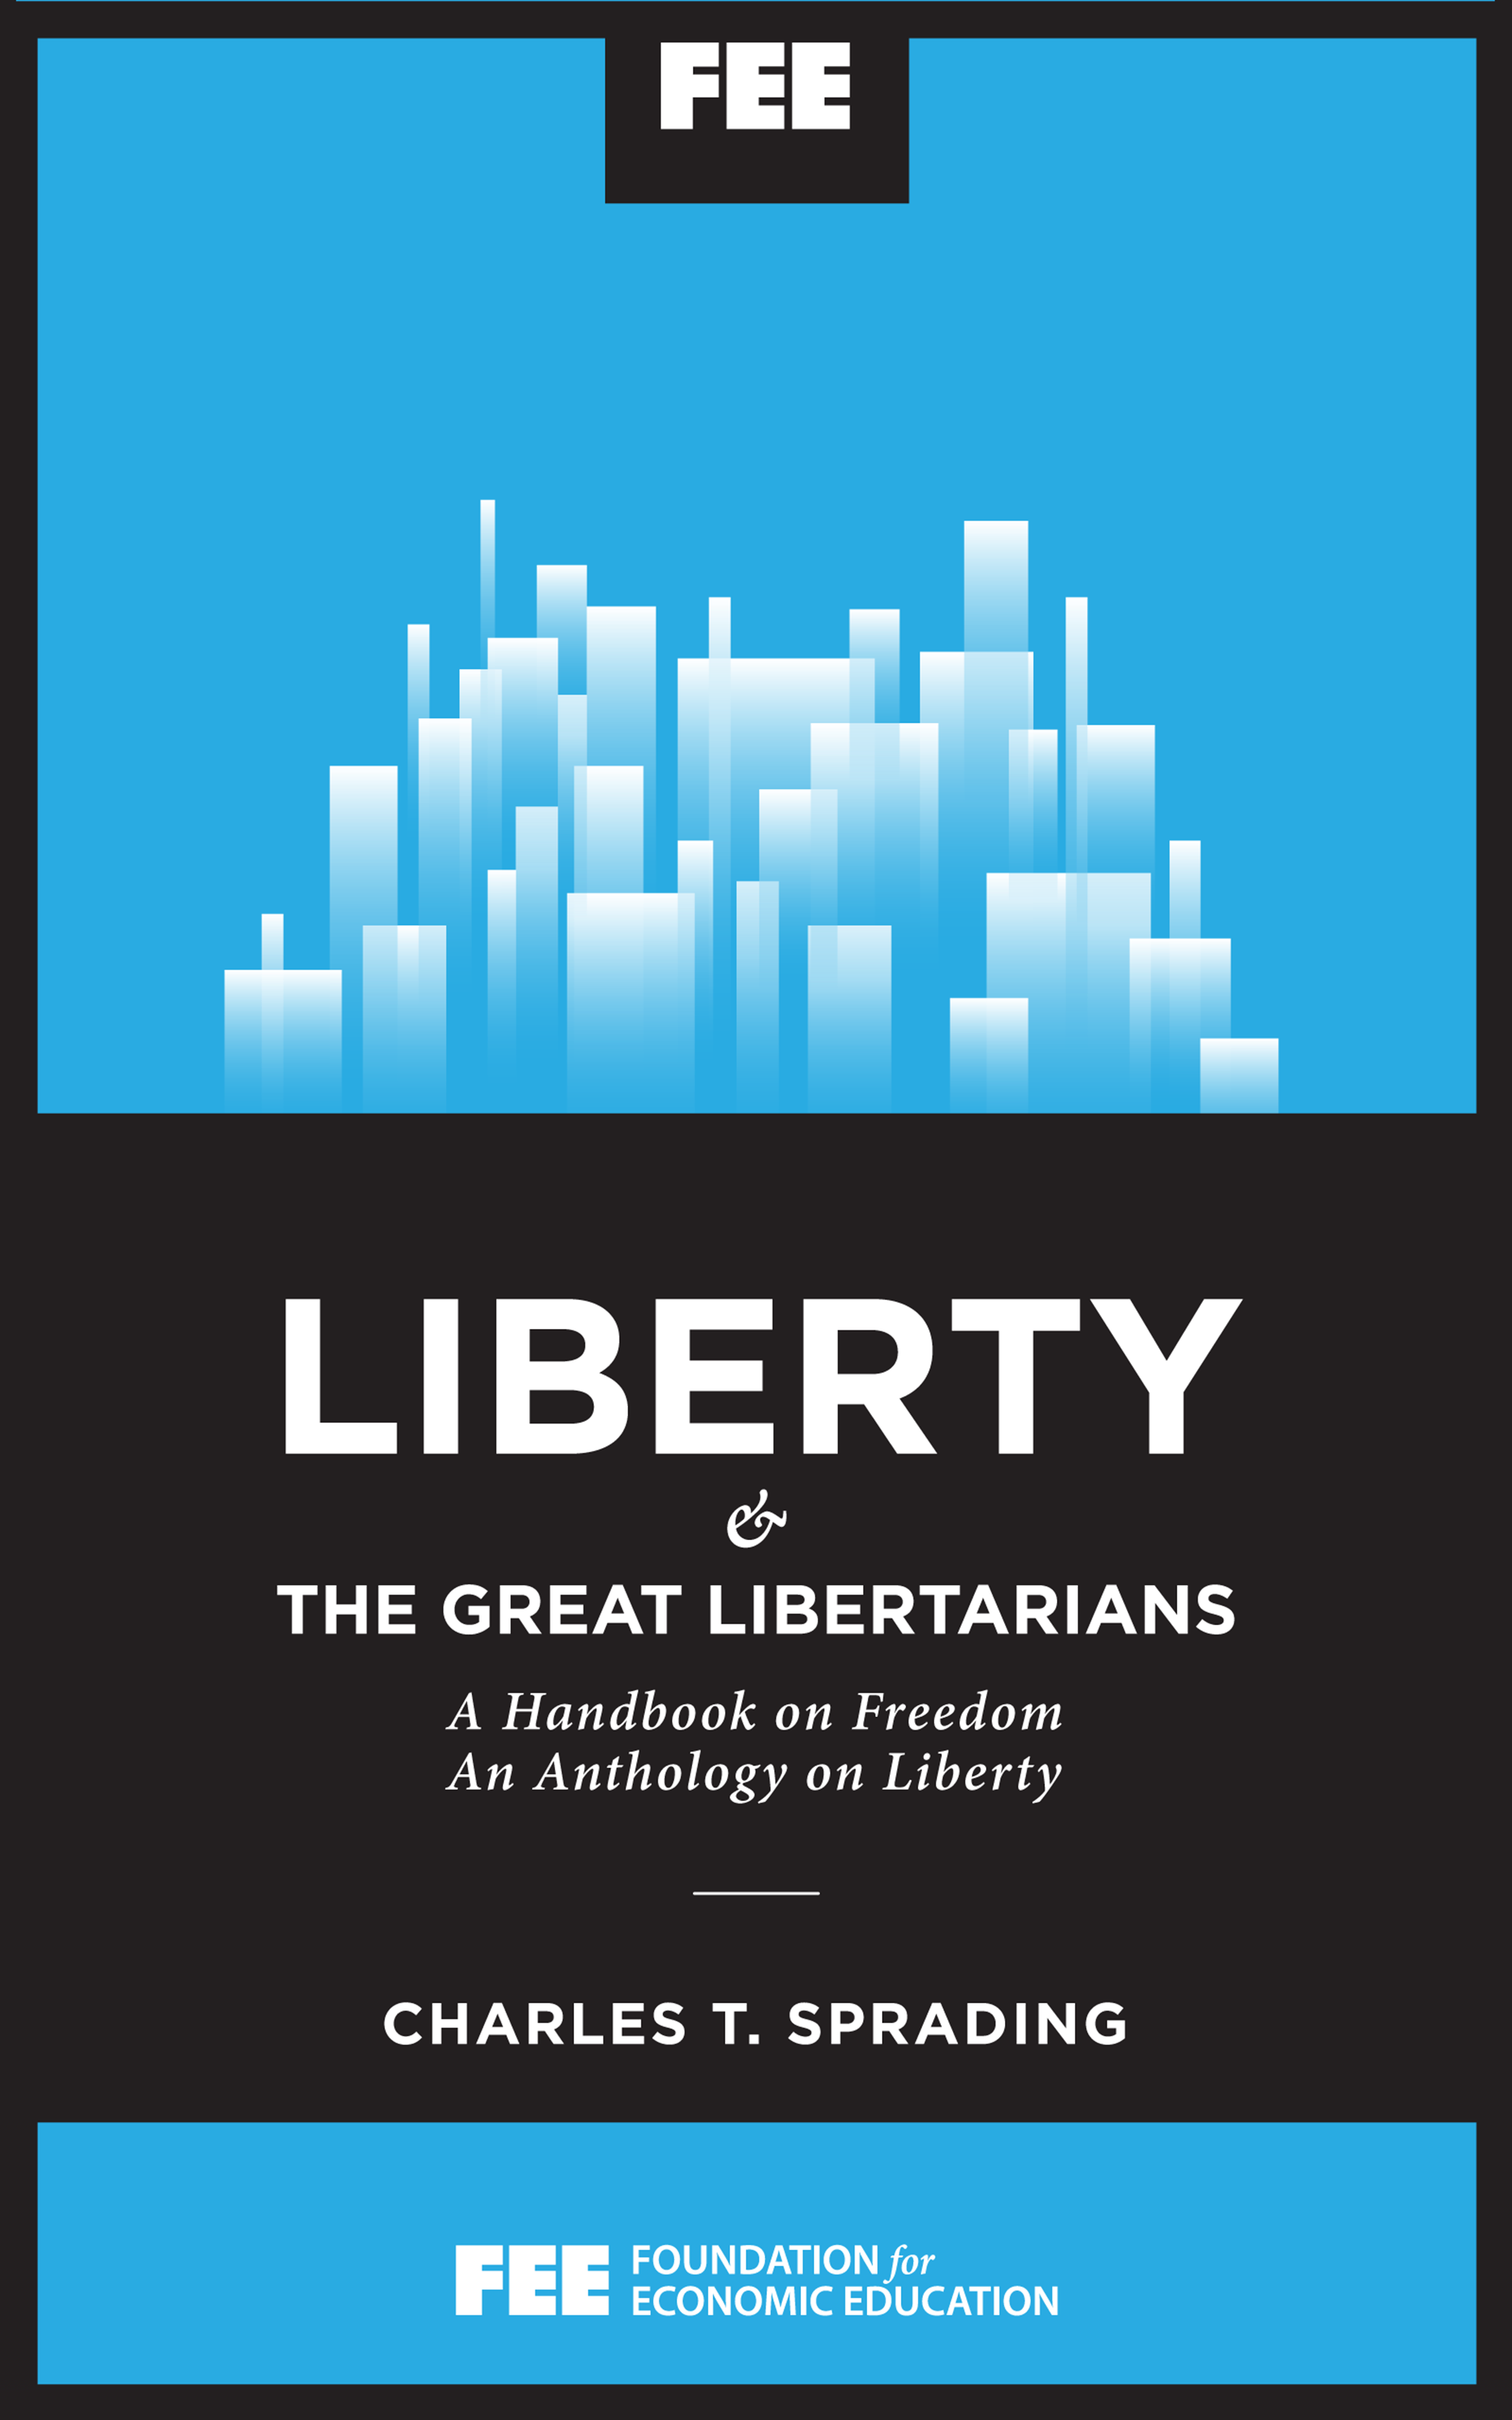 Liberty and the Great Libertarians - Foundation for Economic